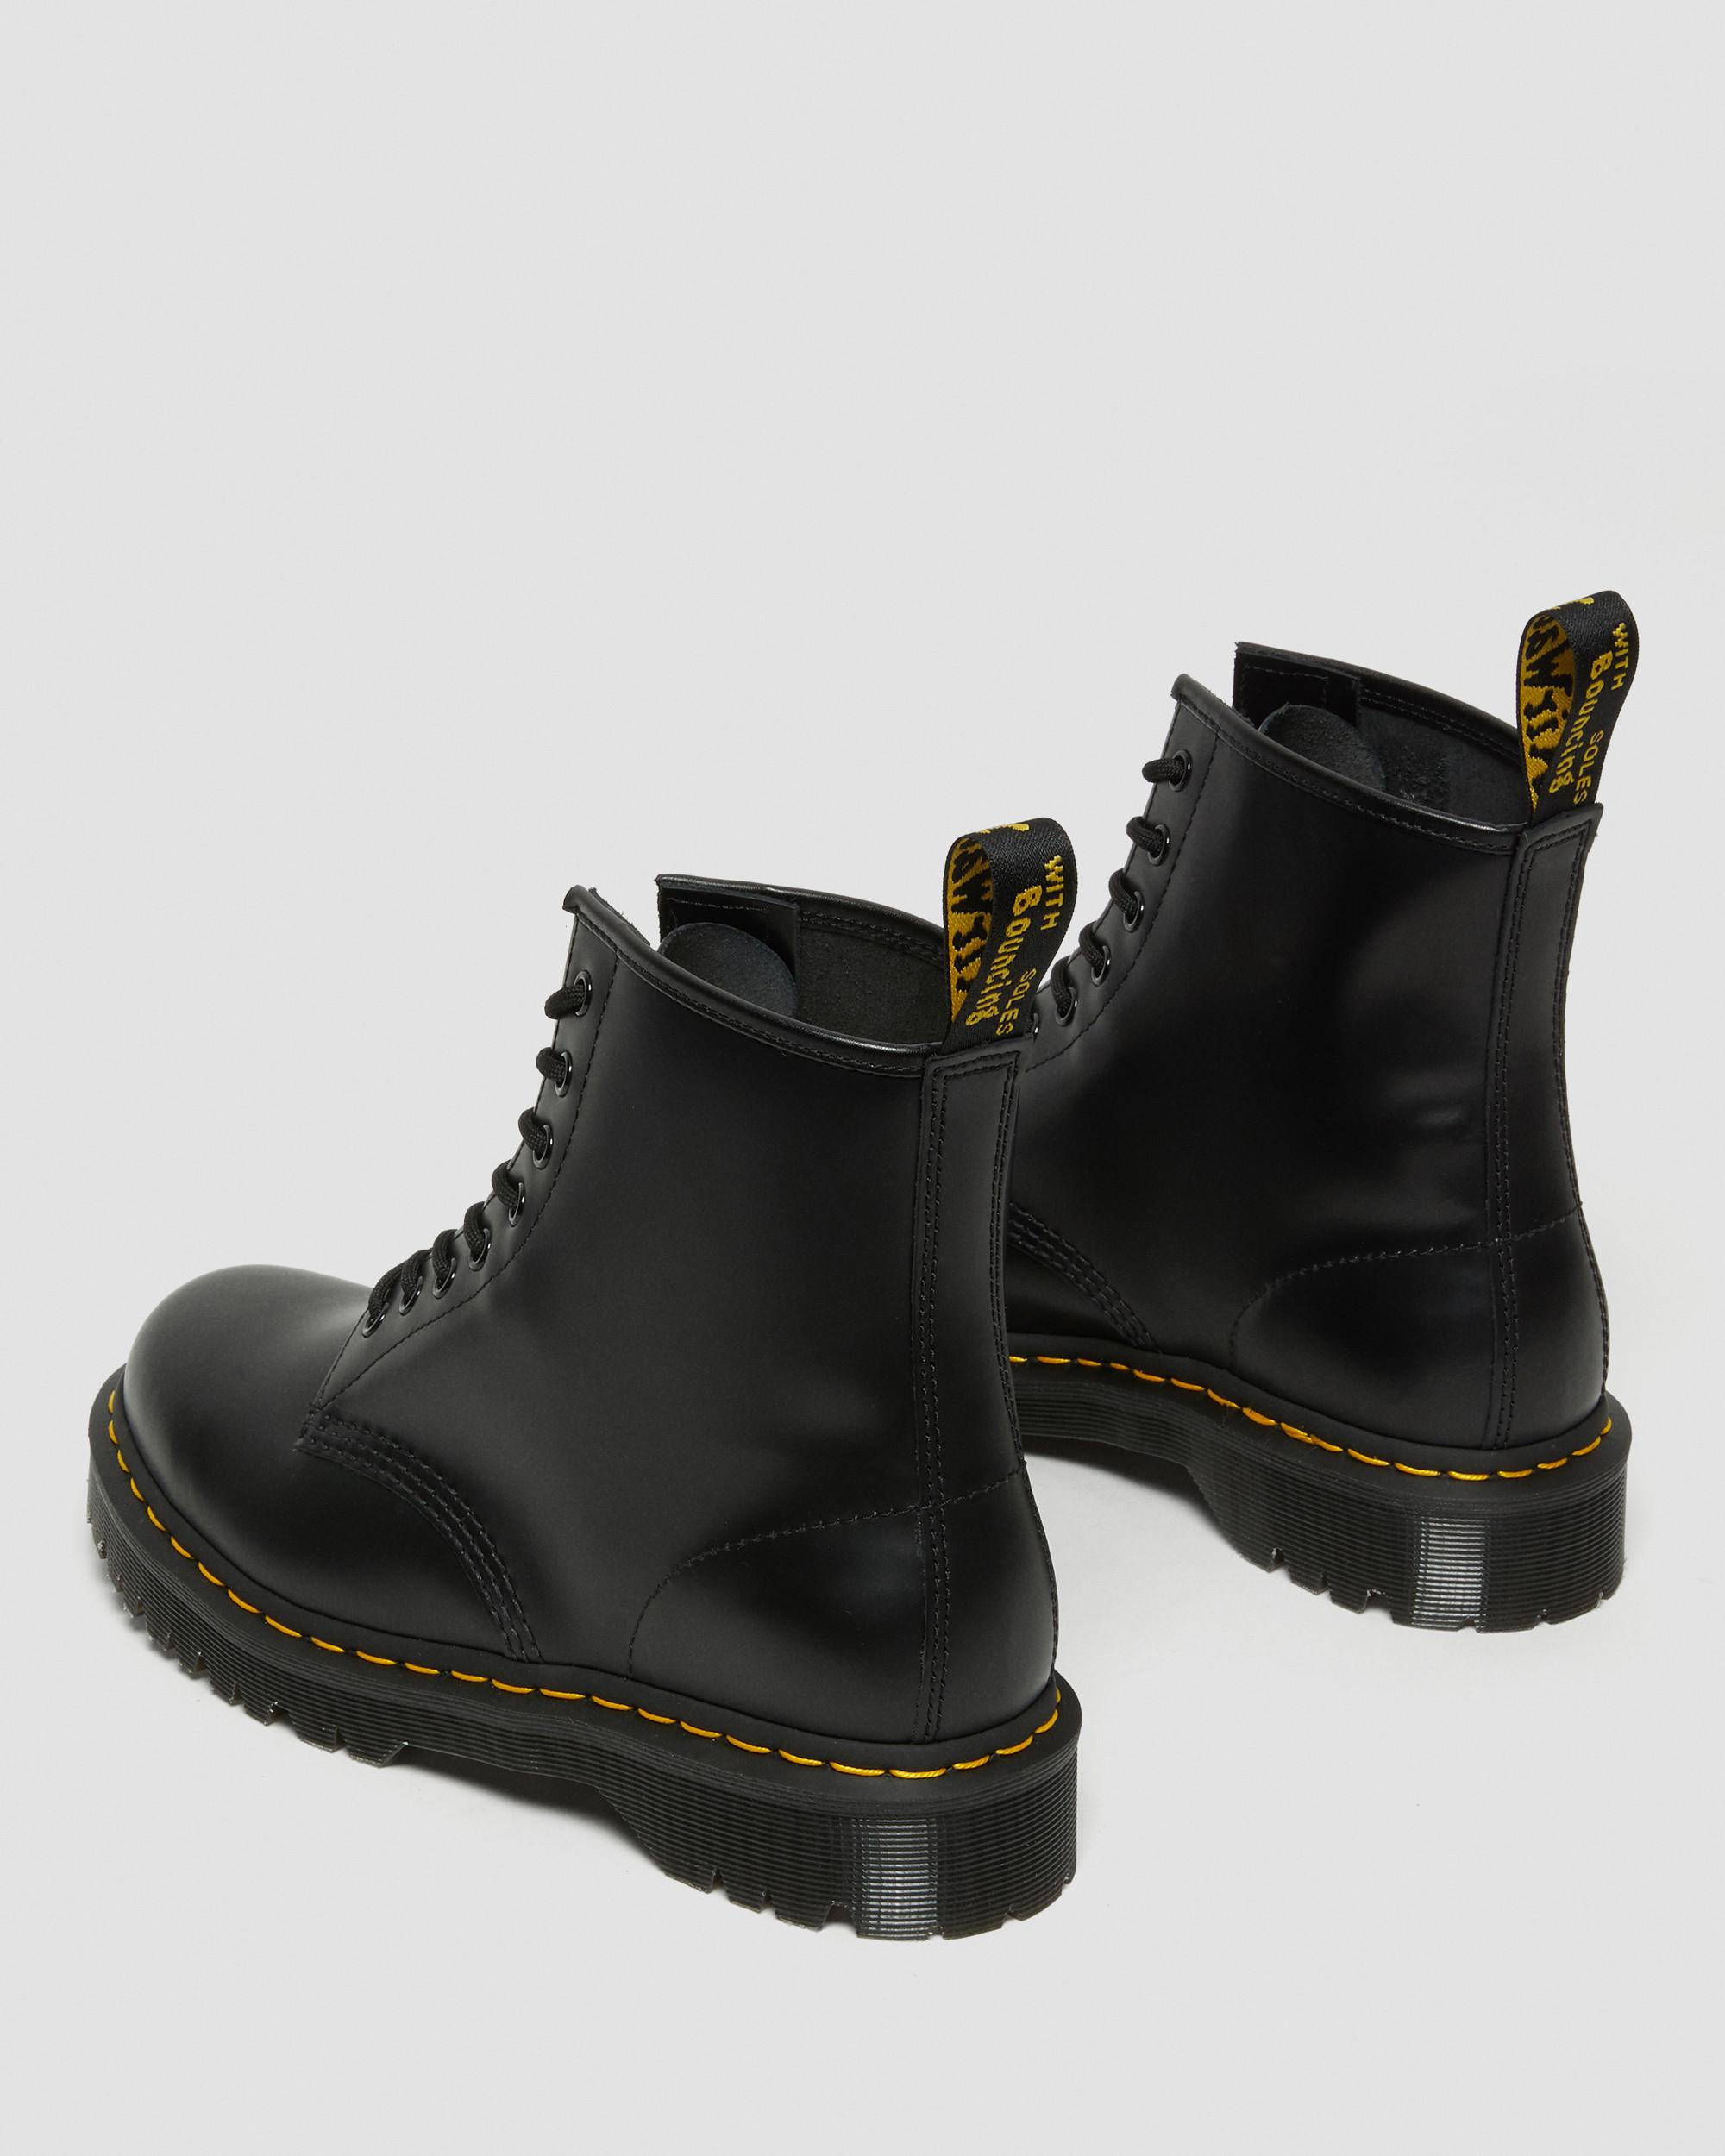 1460 BEX SMOOTH LEATHER PLATFORM BOOTS